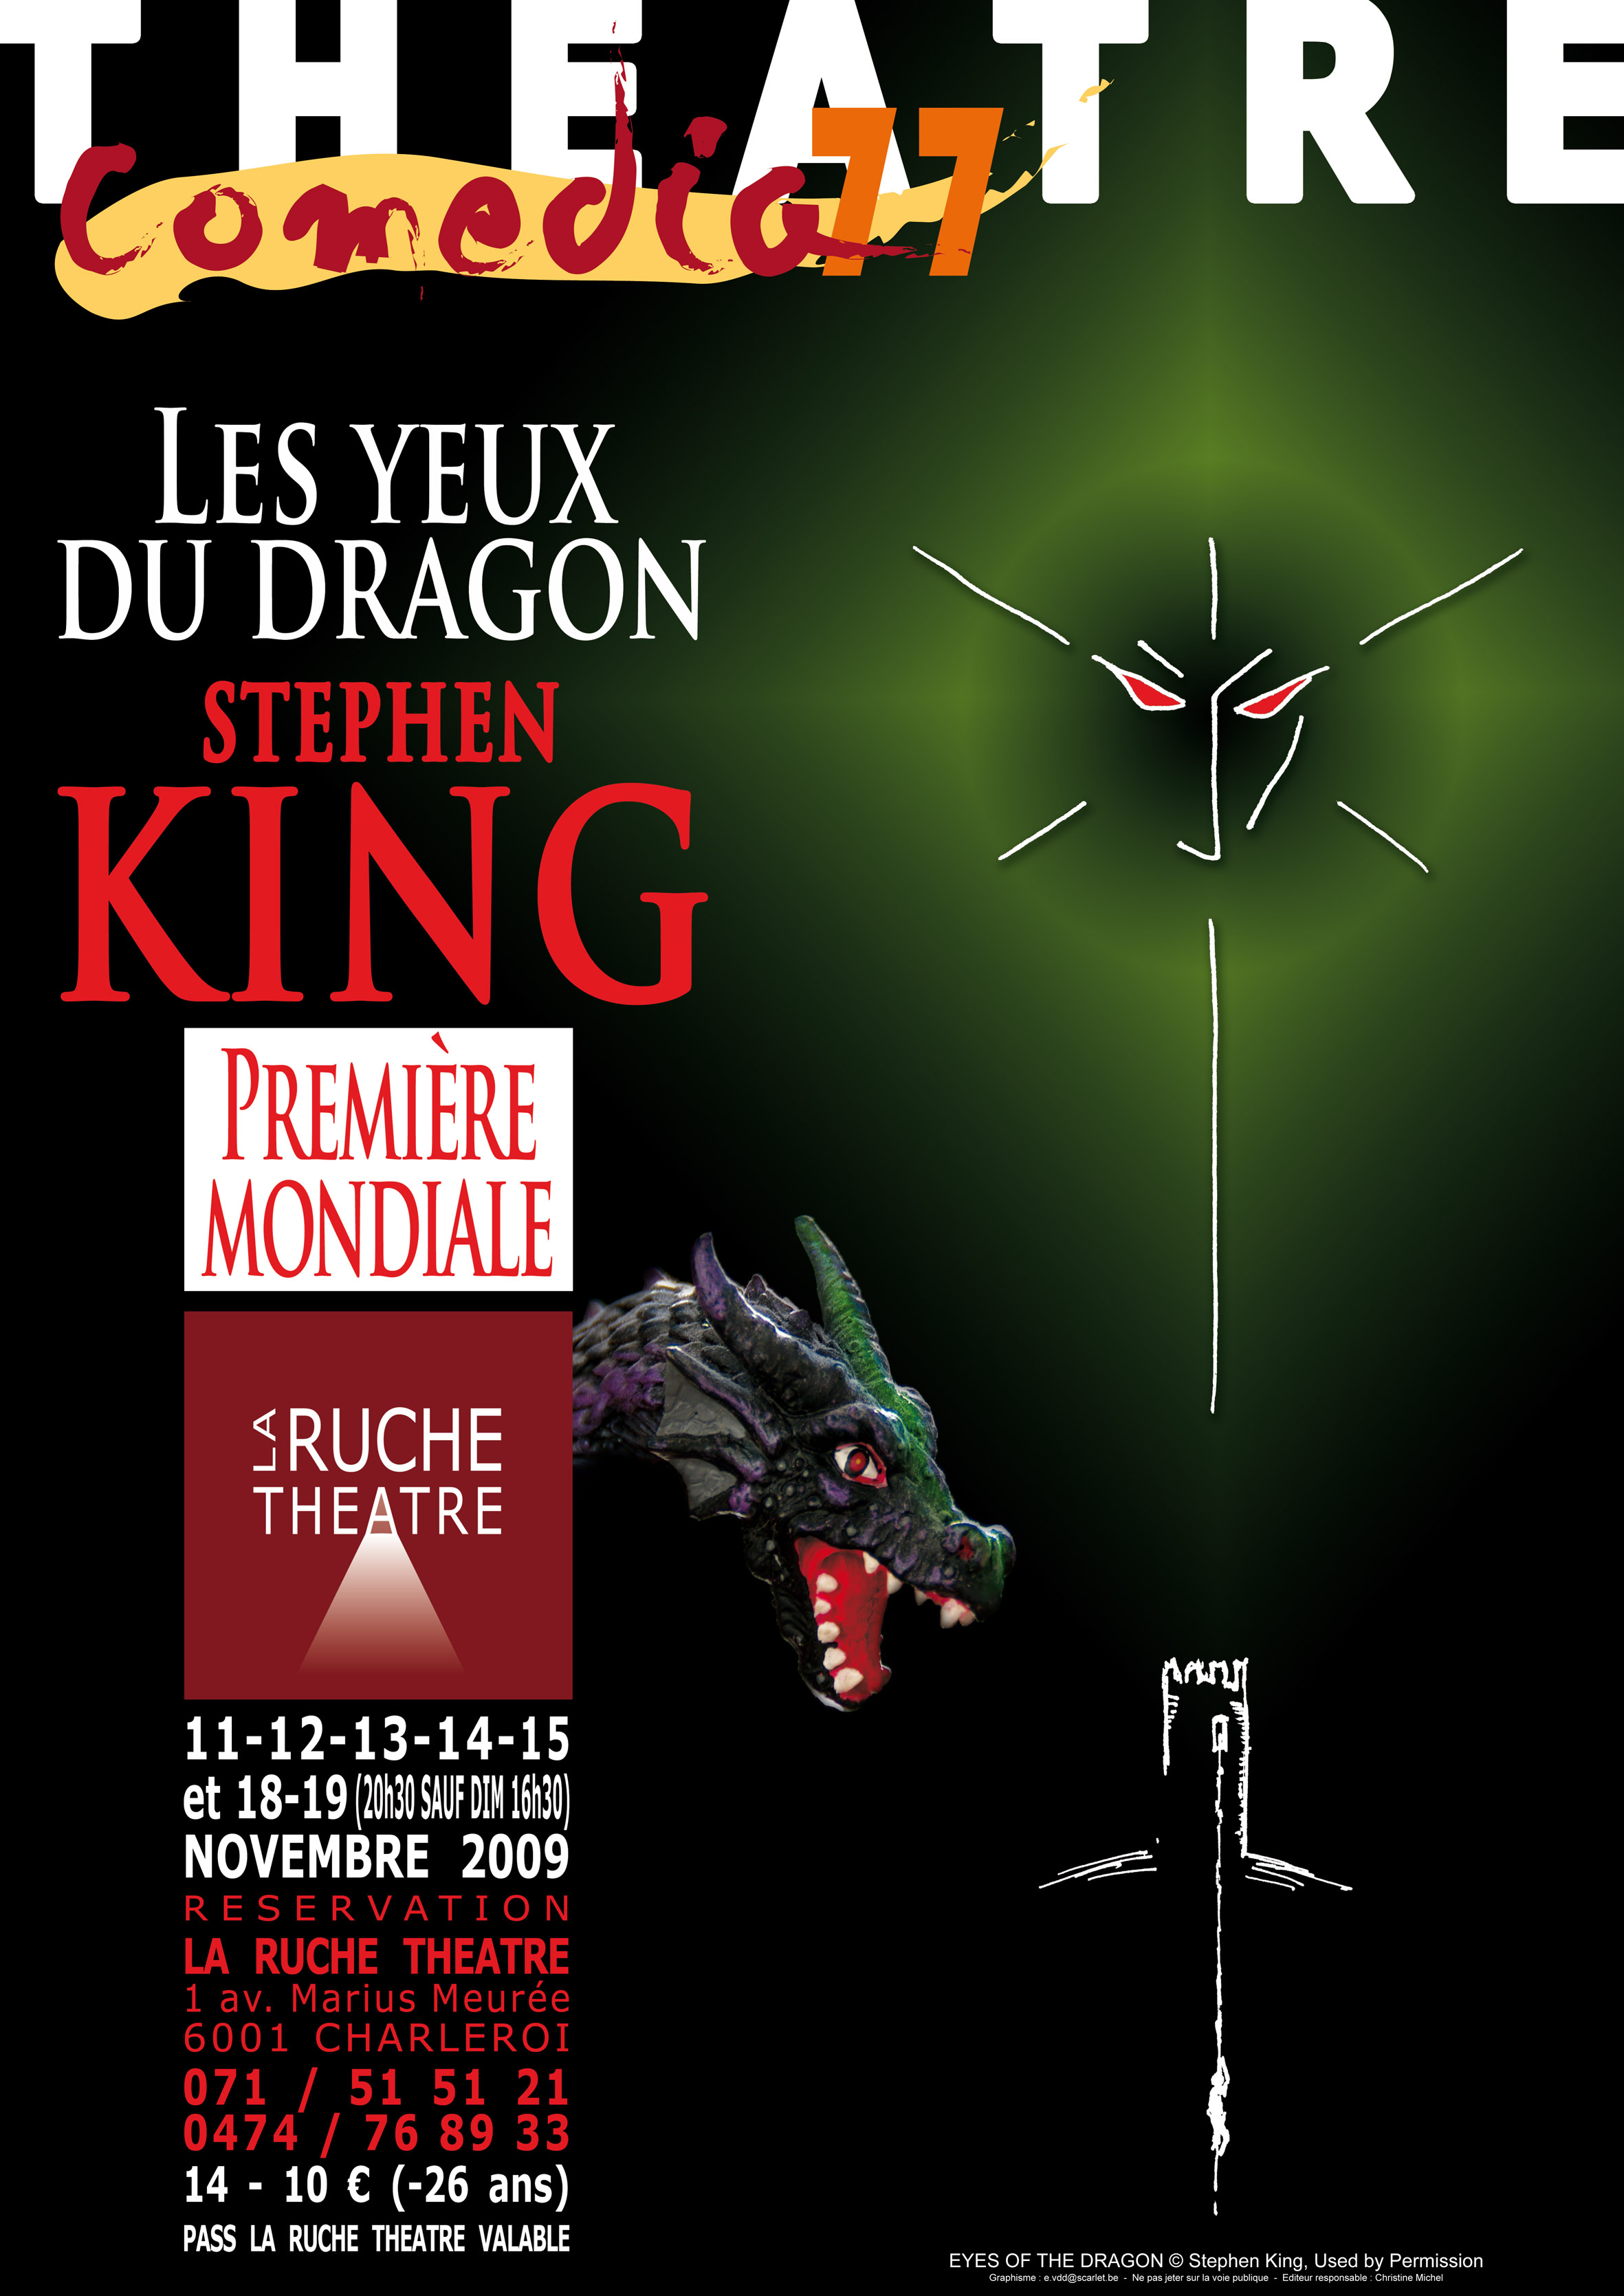 yeux-dragon-theatre.jpg